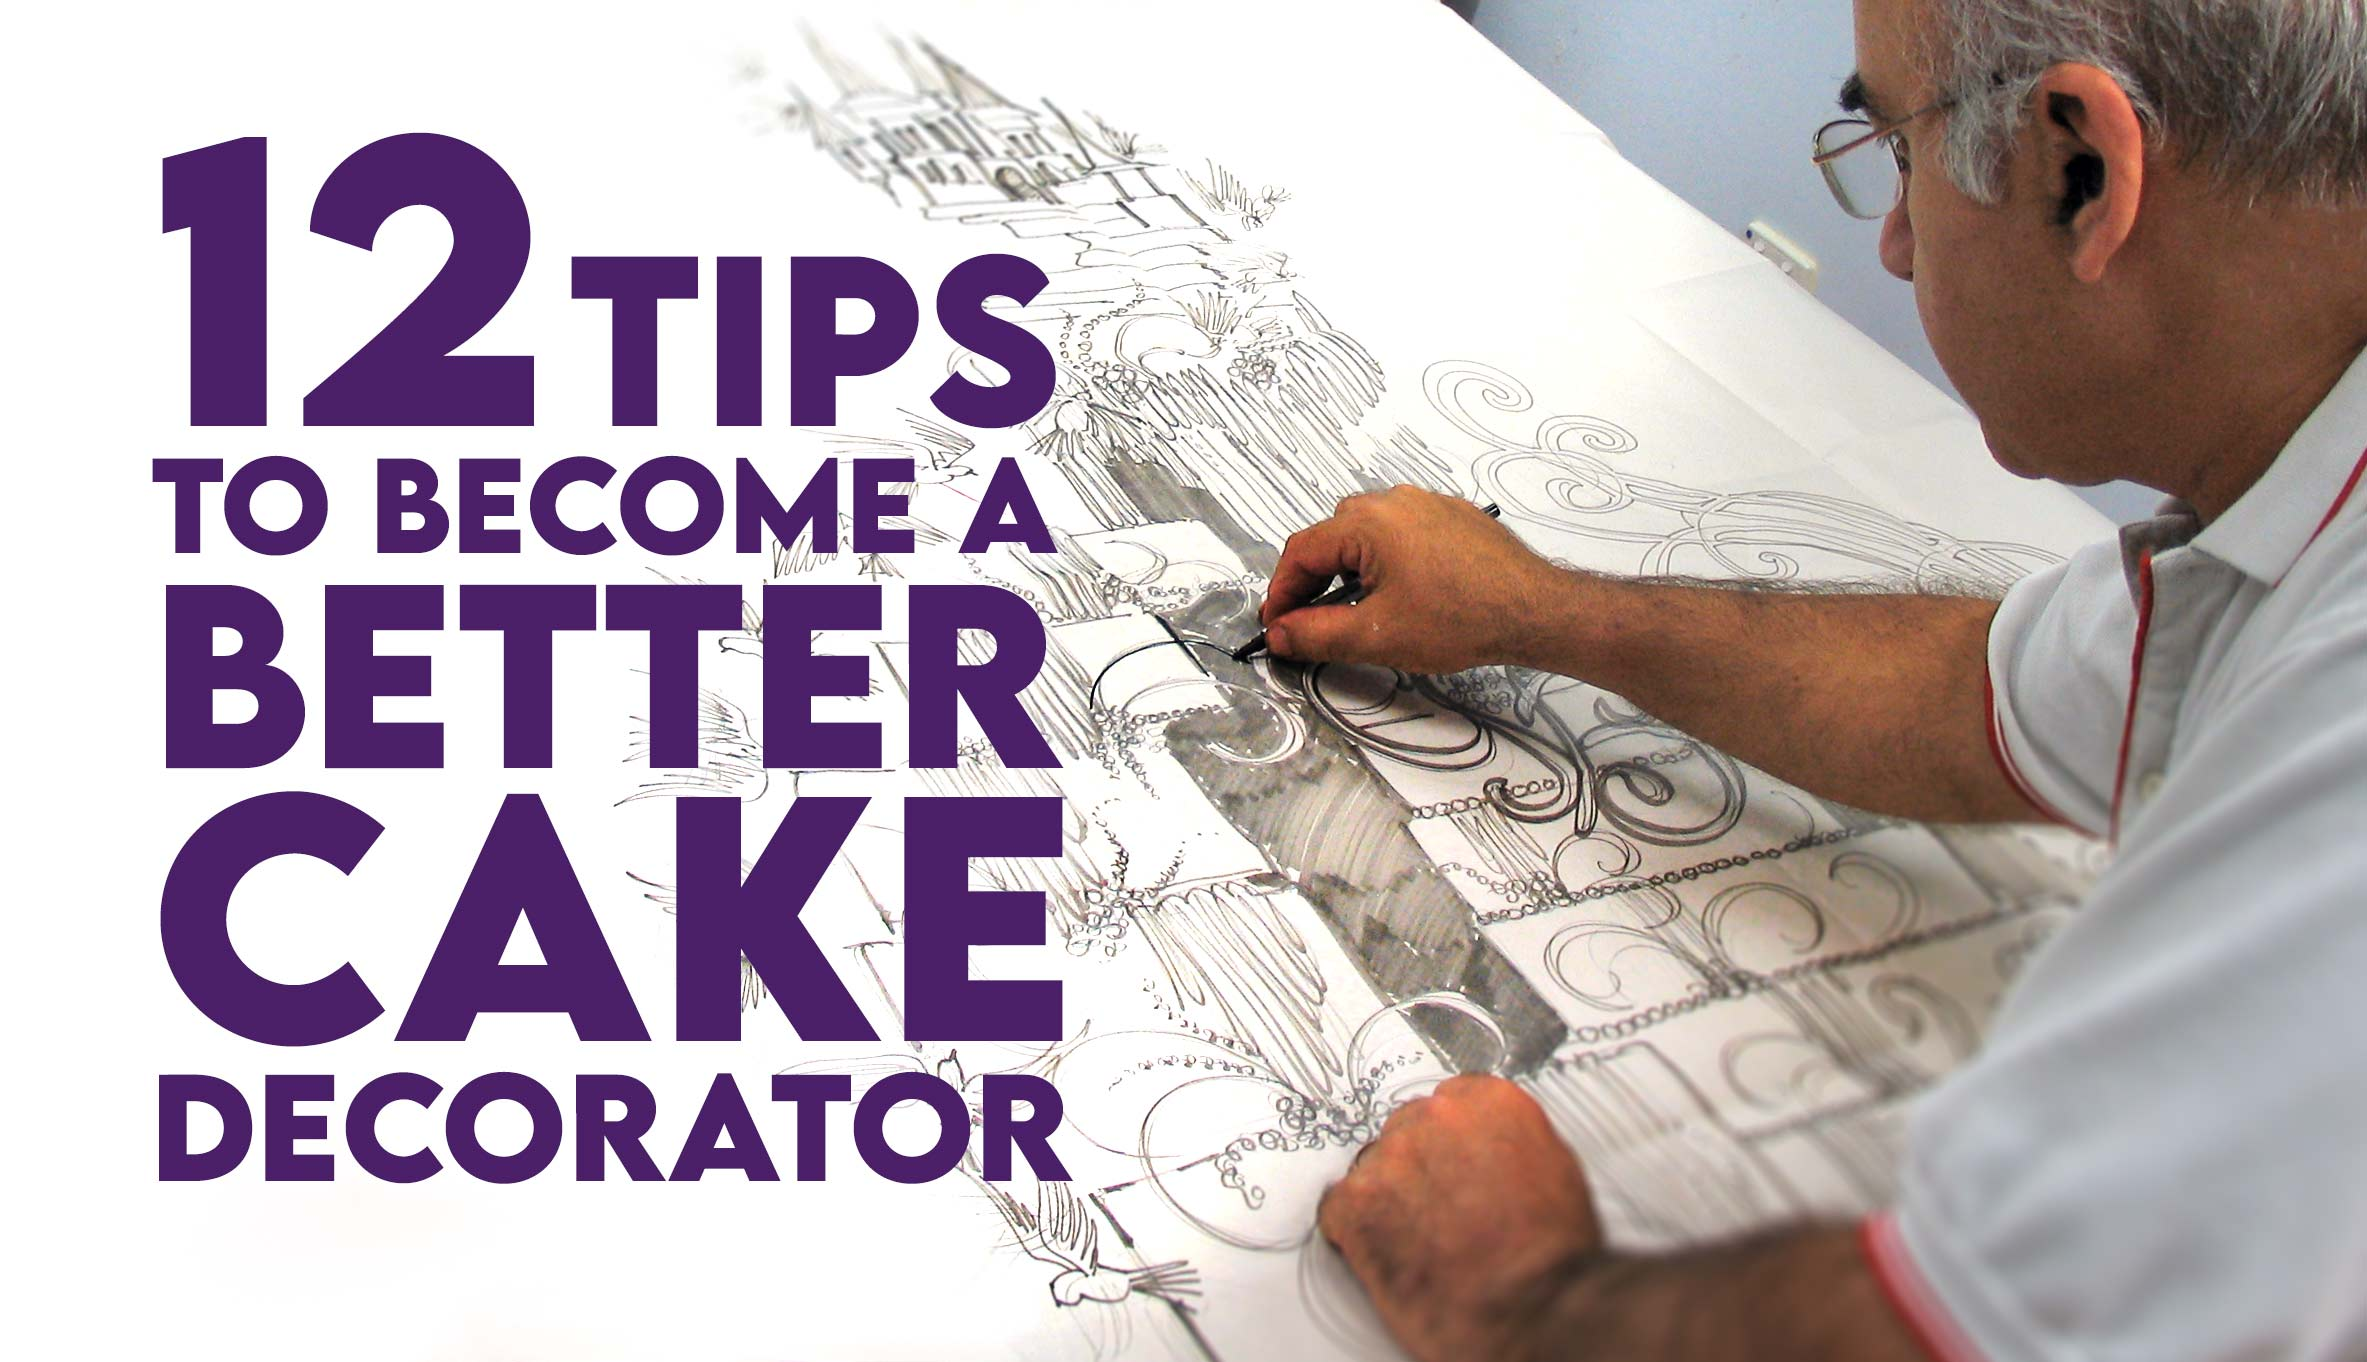 12 Tips to Become a Better Cake Decorator